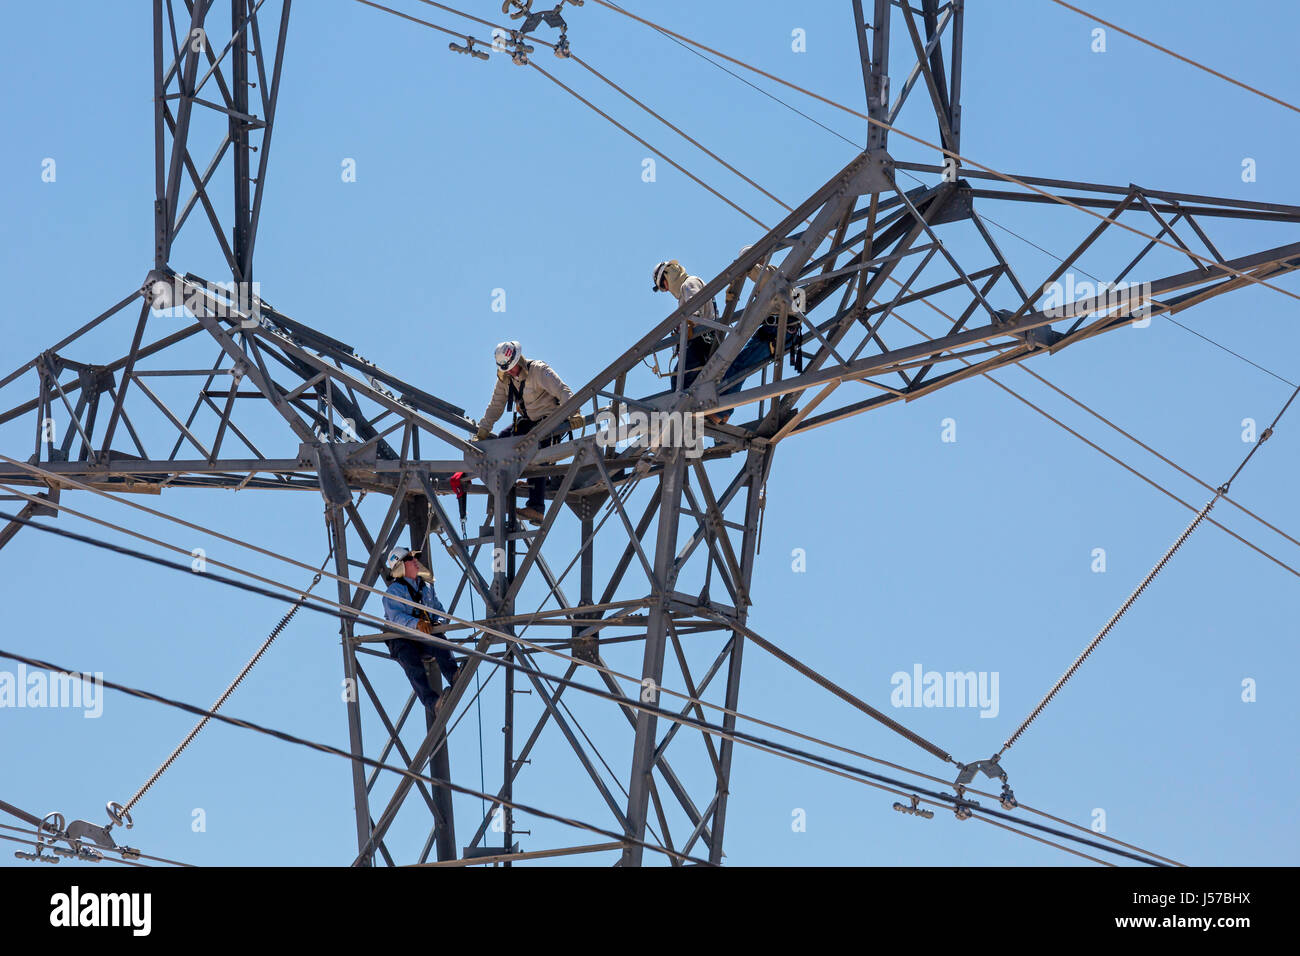 Tucson, Arizona - Workers on a high voltage electrical transmission tower at Tucson Electric Power's H. Wilson - Stock Image